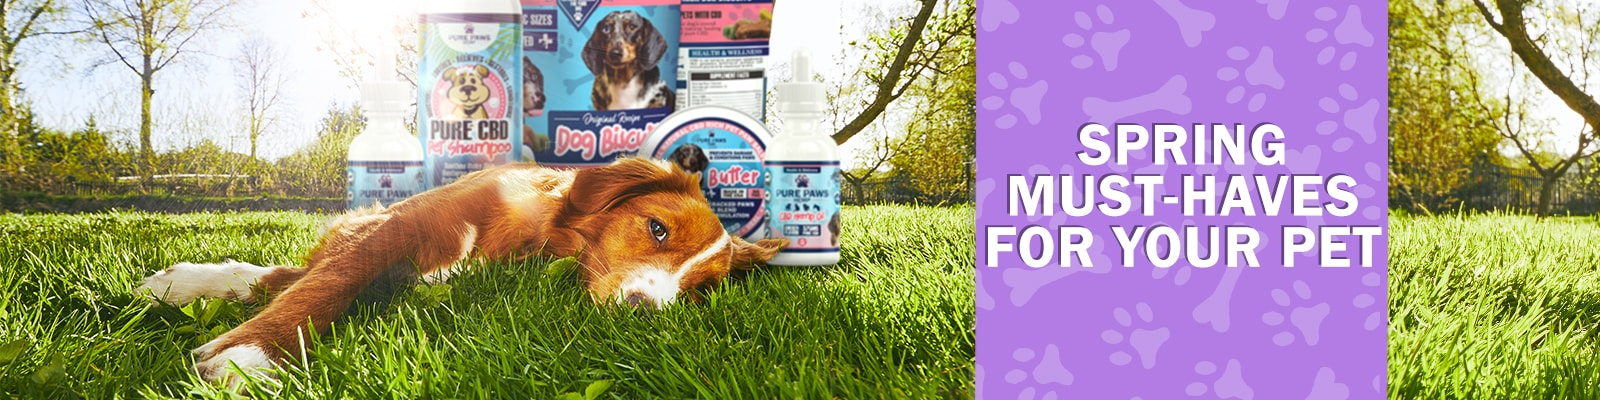 Pure Paws Hemp pet products you need this spring